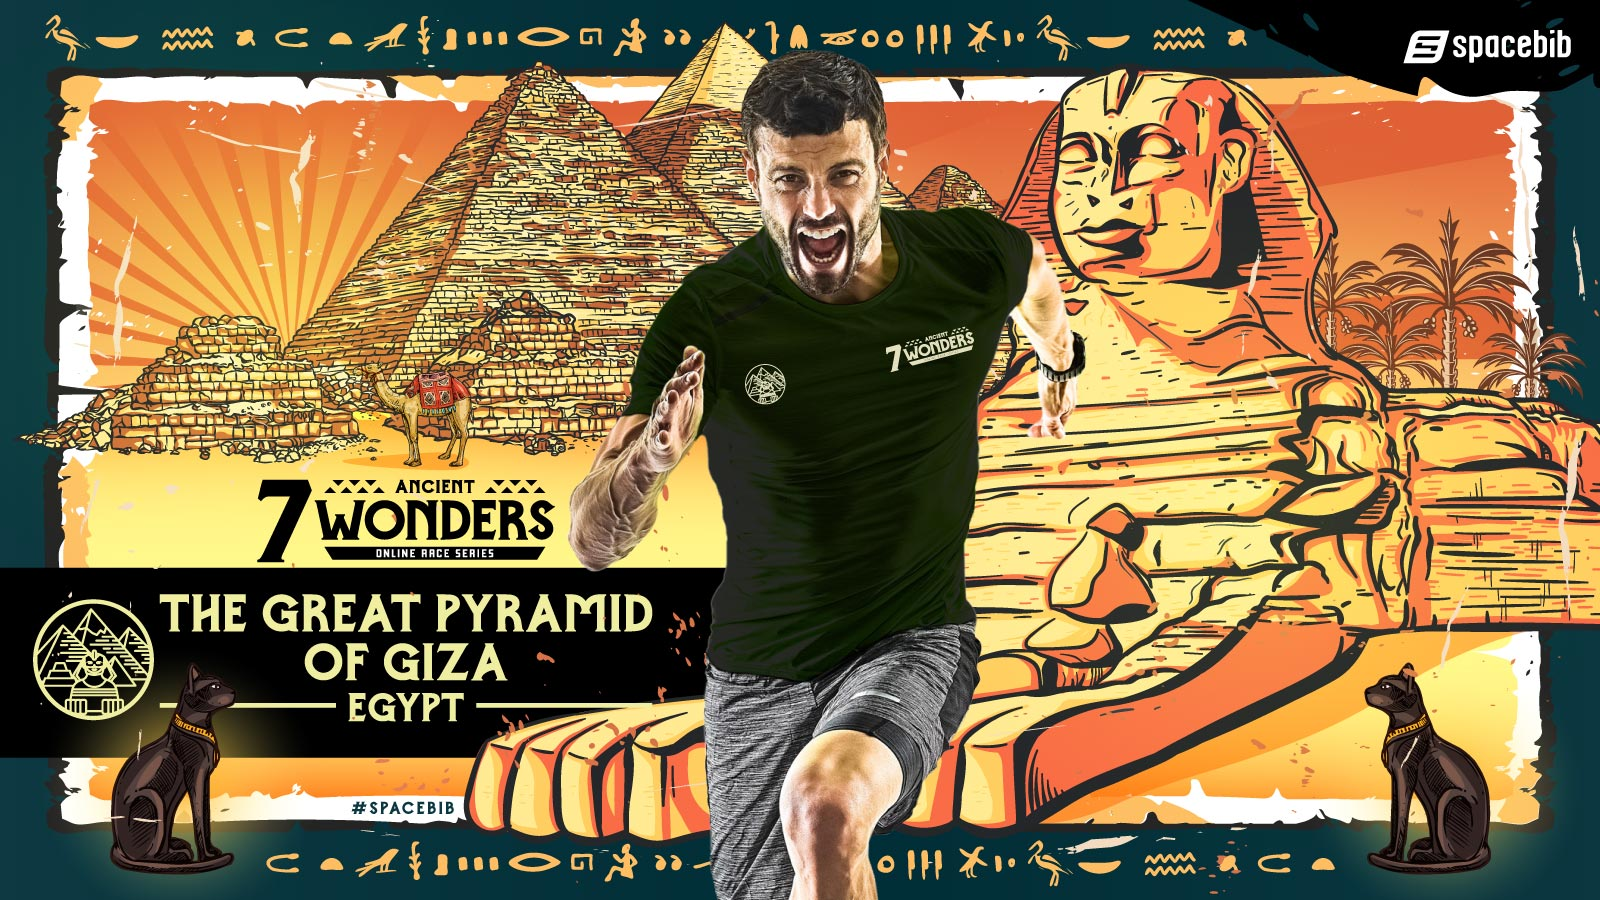 7 Ancient Wonders Online Race Series: The Great Pyramid